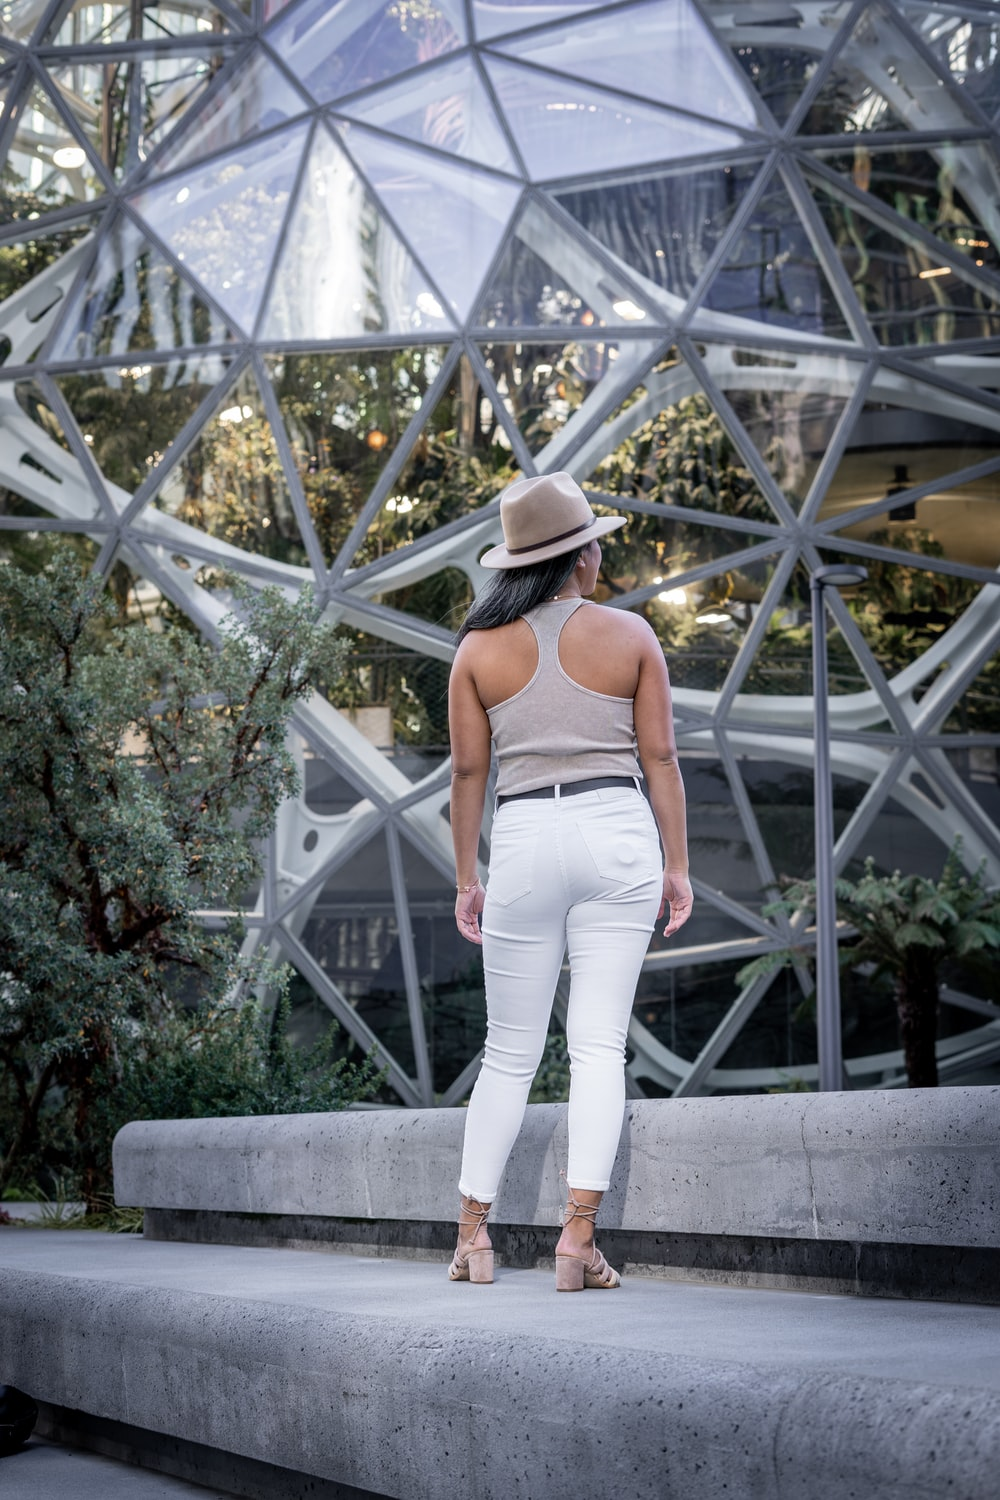 woman in gray tank top and white pants wearing black fedora hat standing on gray concrete